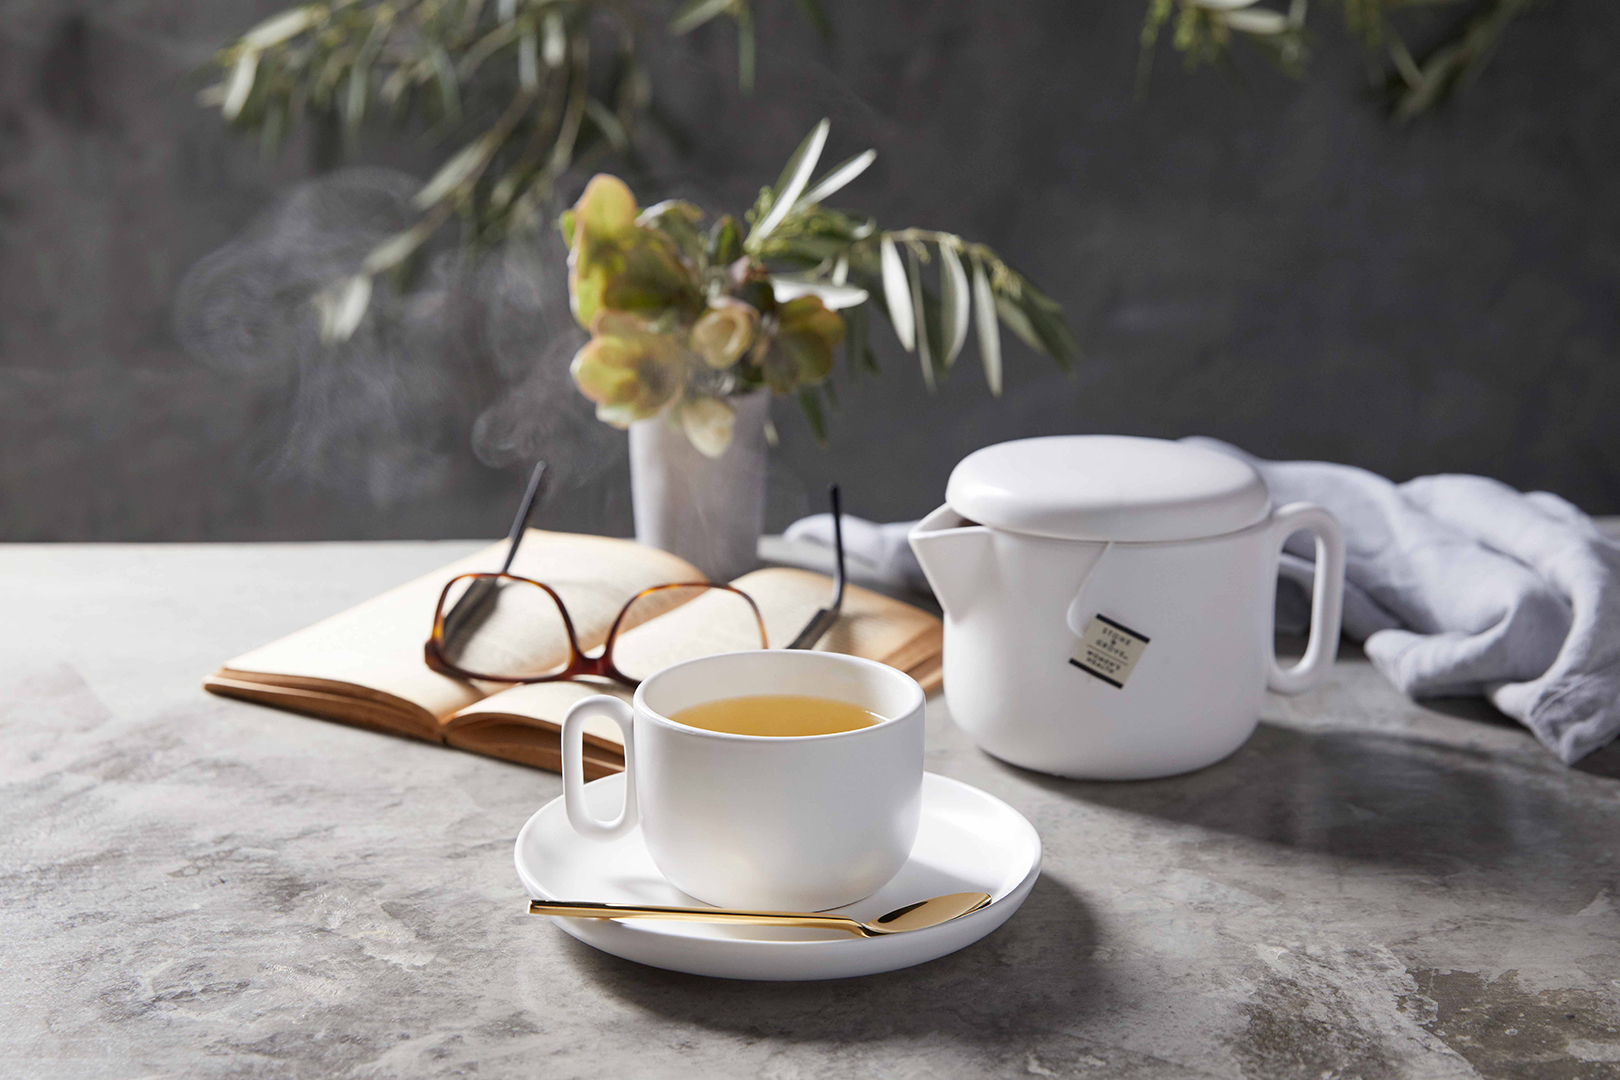 A White tea cup with a gold spoon filled with steaming hot Women's Health night time hot tea on a grey background teapot and book with glasses